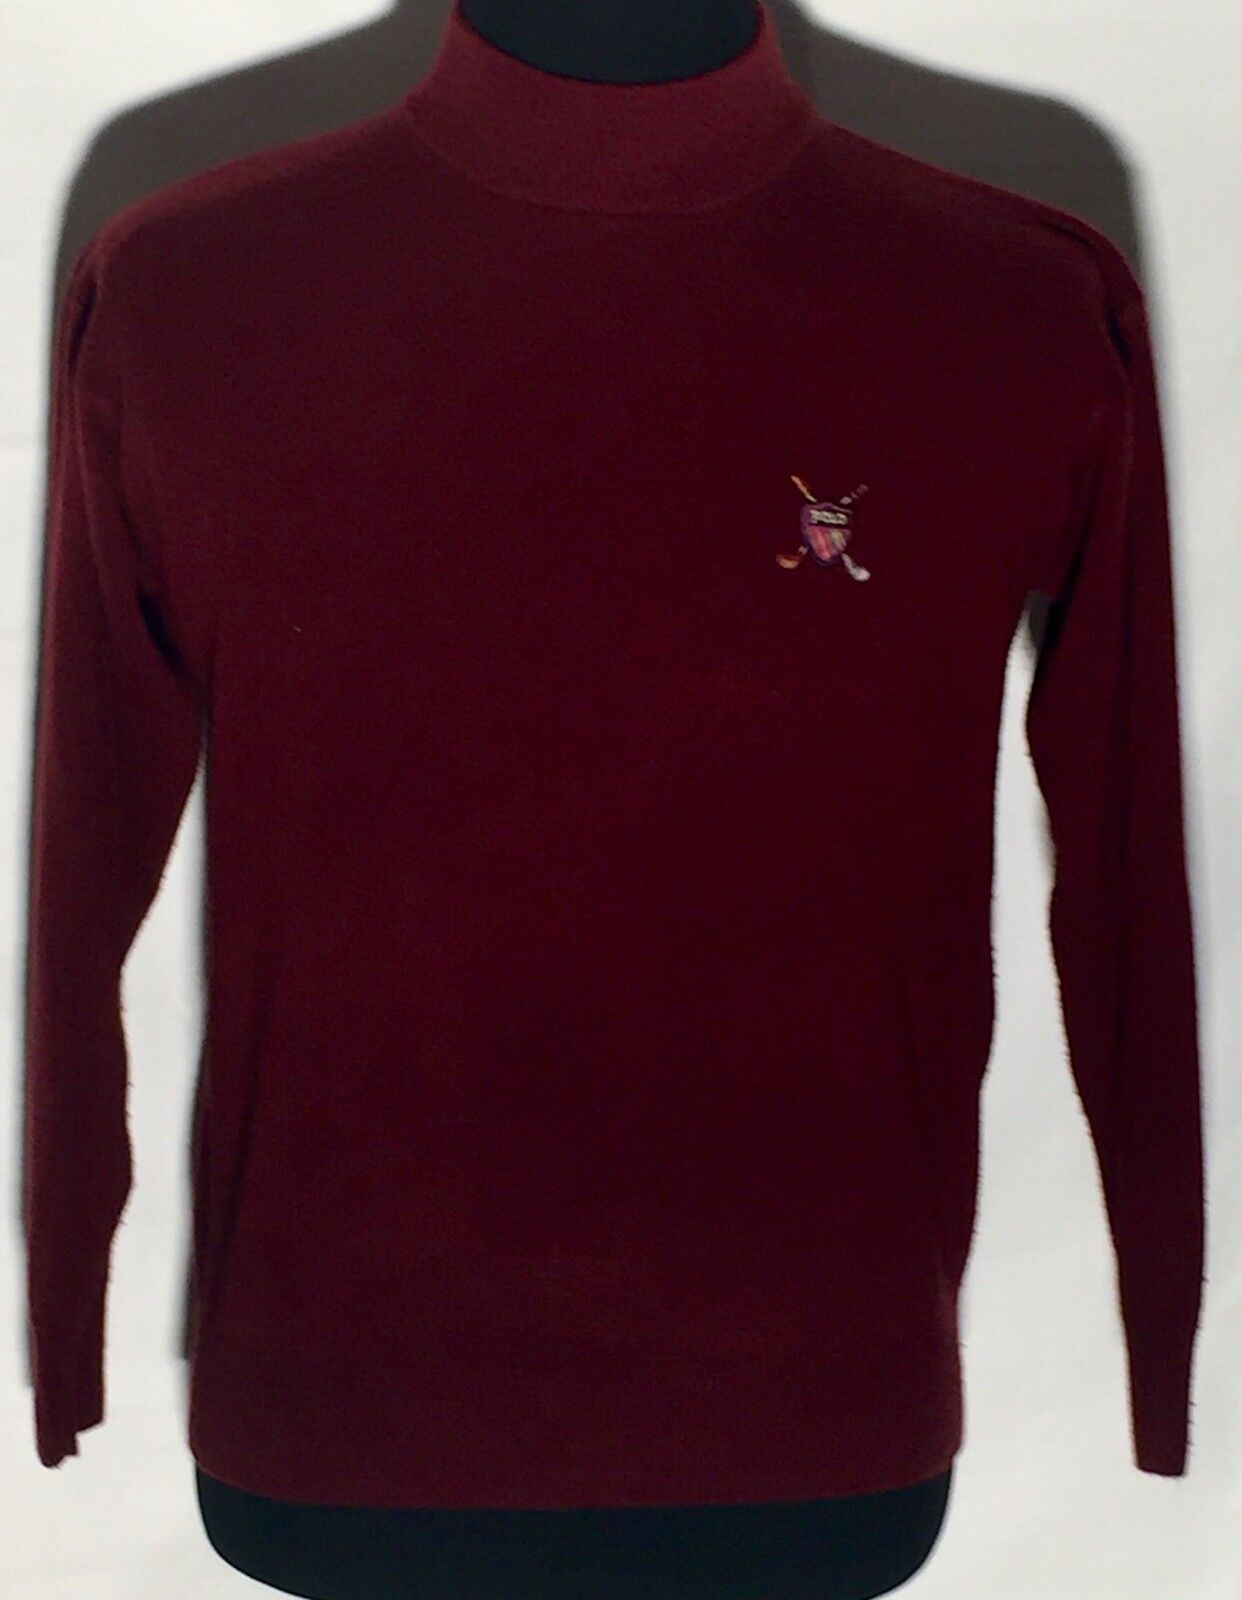 Vtg Polo Brand Logo 100% Cashmere Größe Medium M ROT Burgandy Long Sleeve Sweater